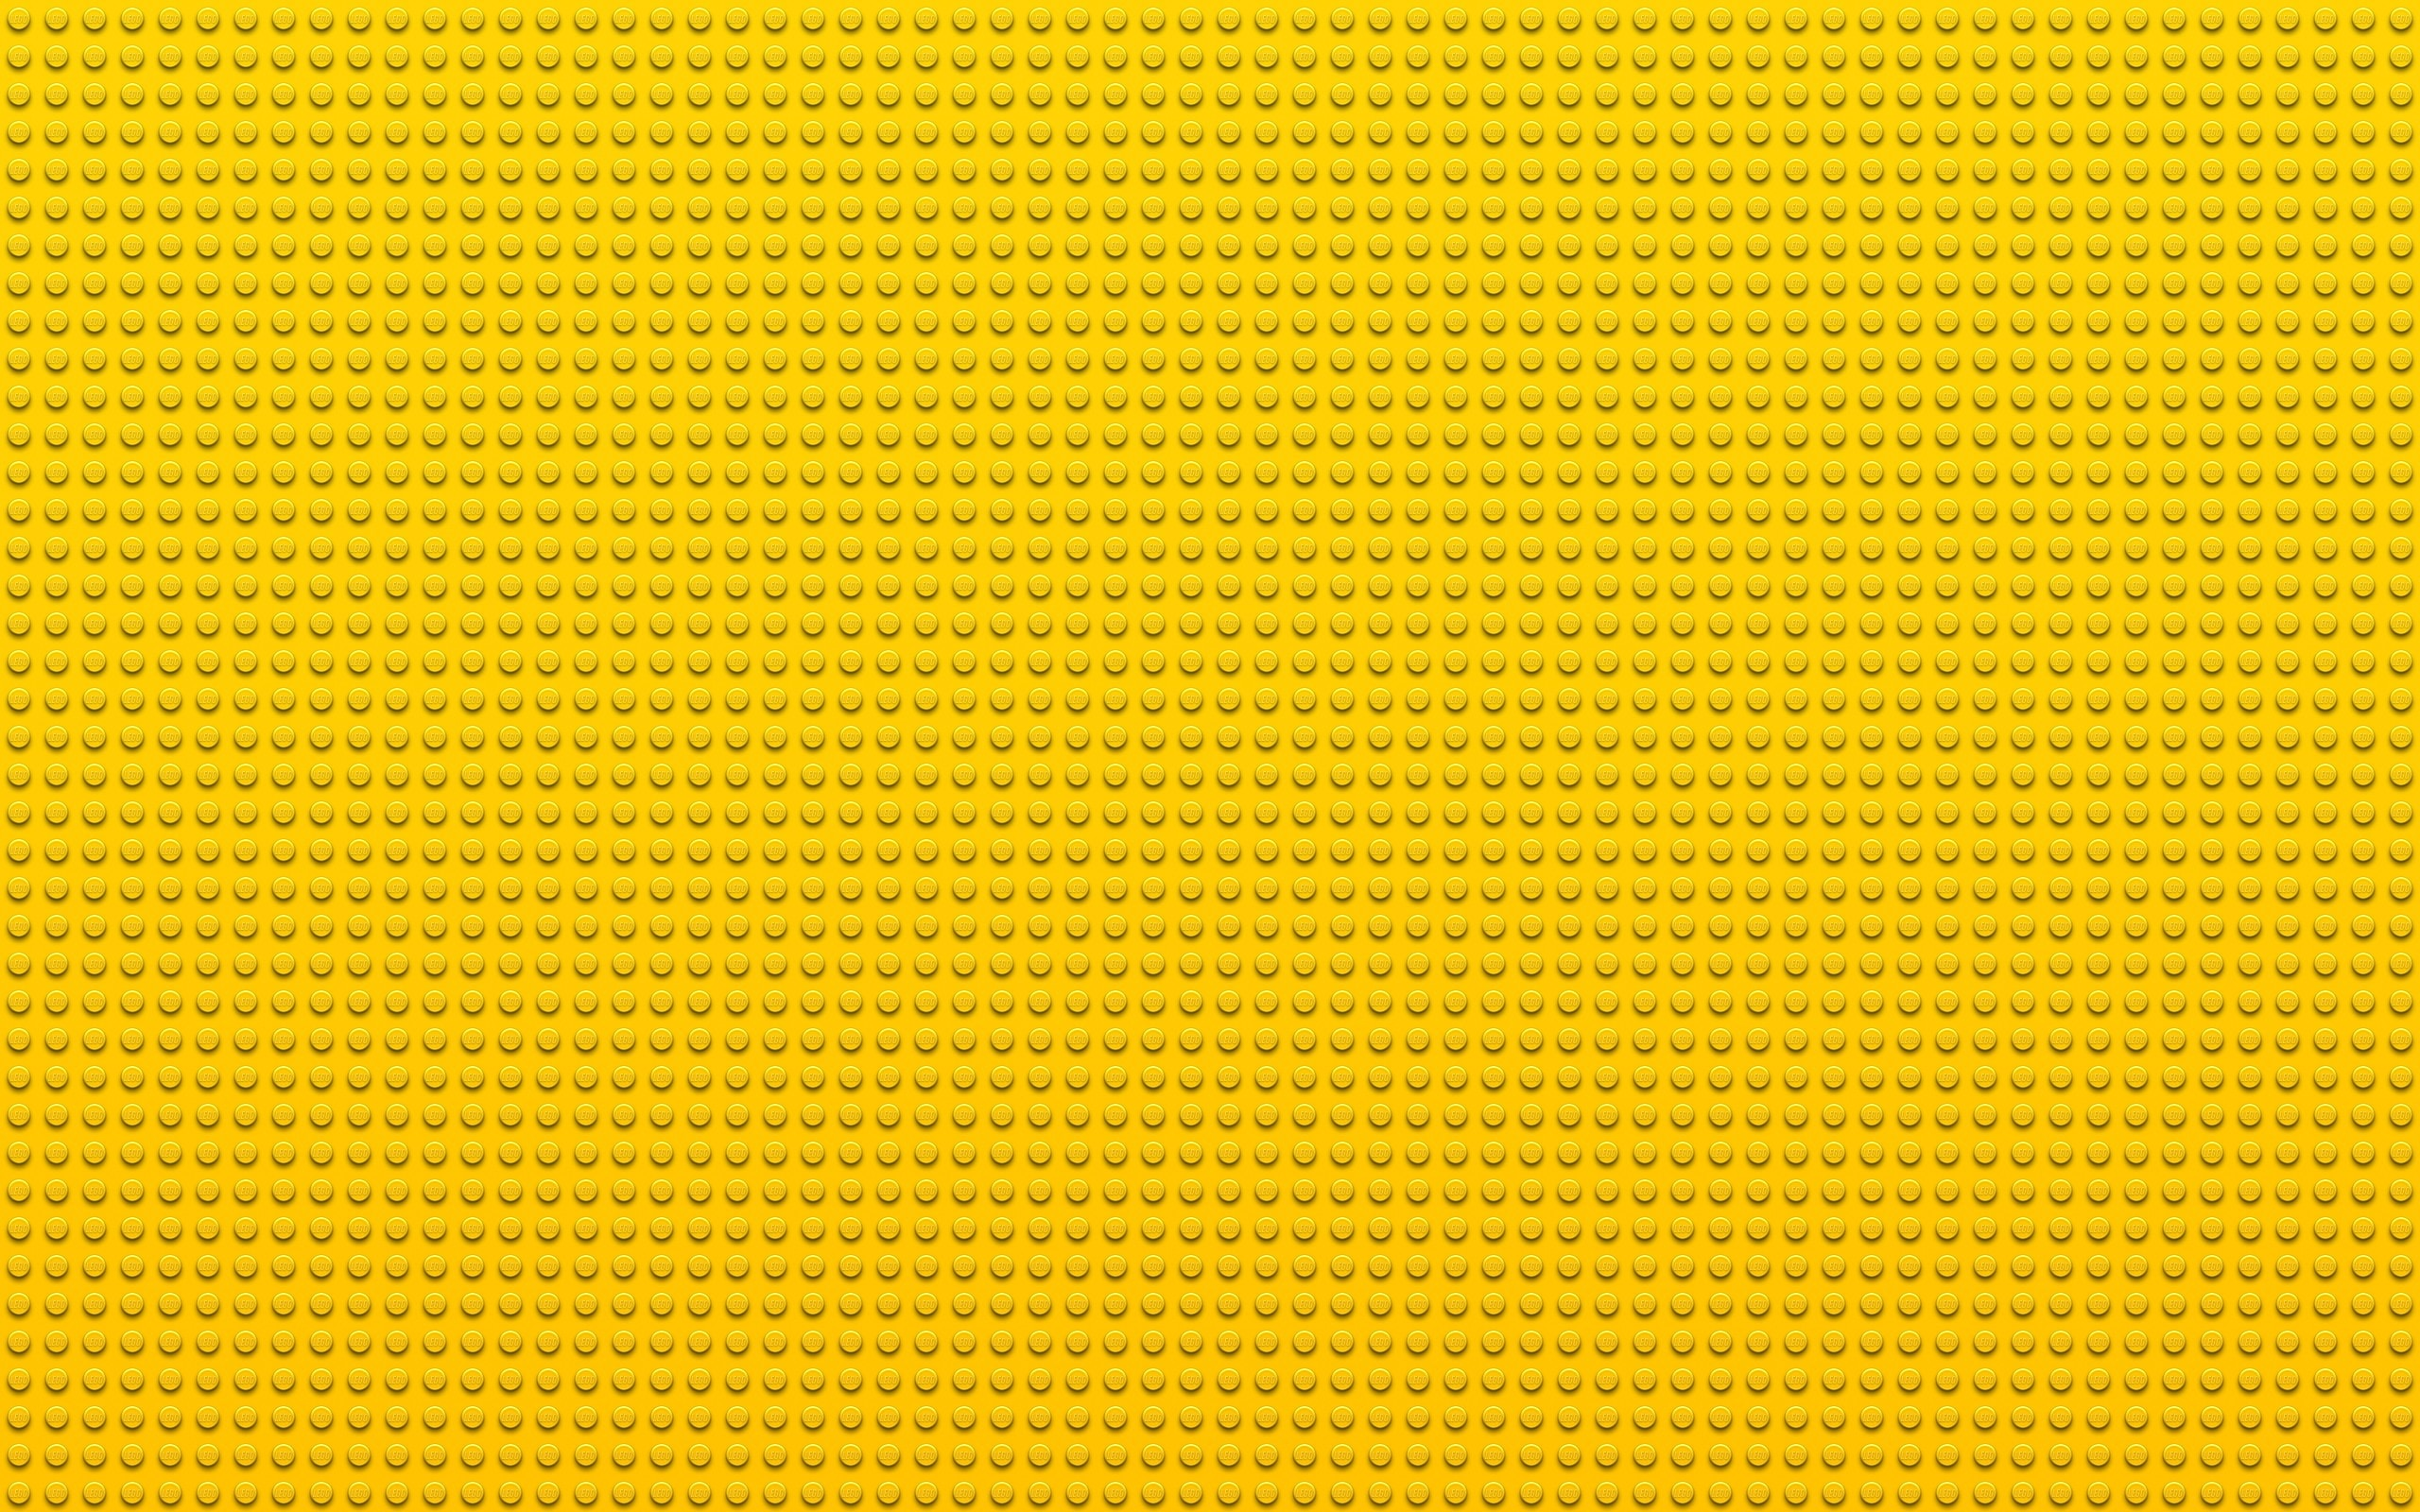 yellow aesthetic computer wallpapers